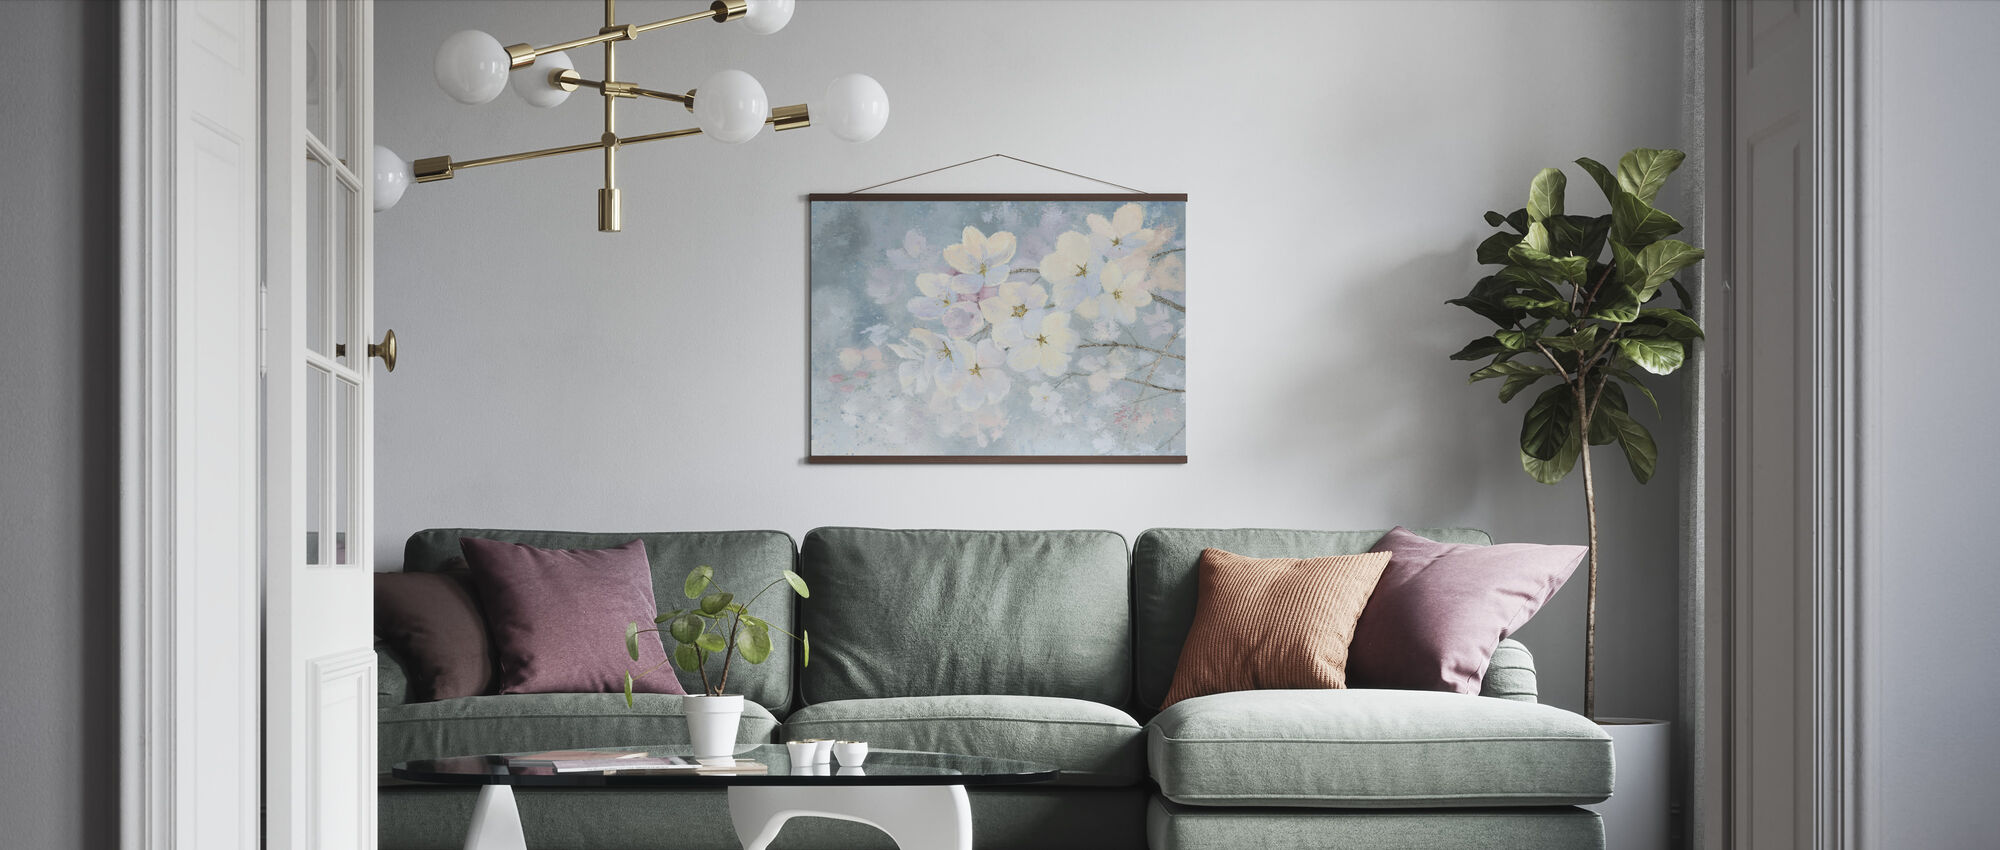 Splendid Bloom - Poster - Living Room